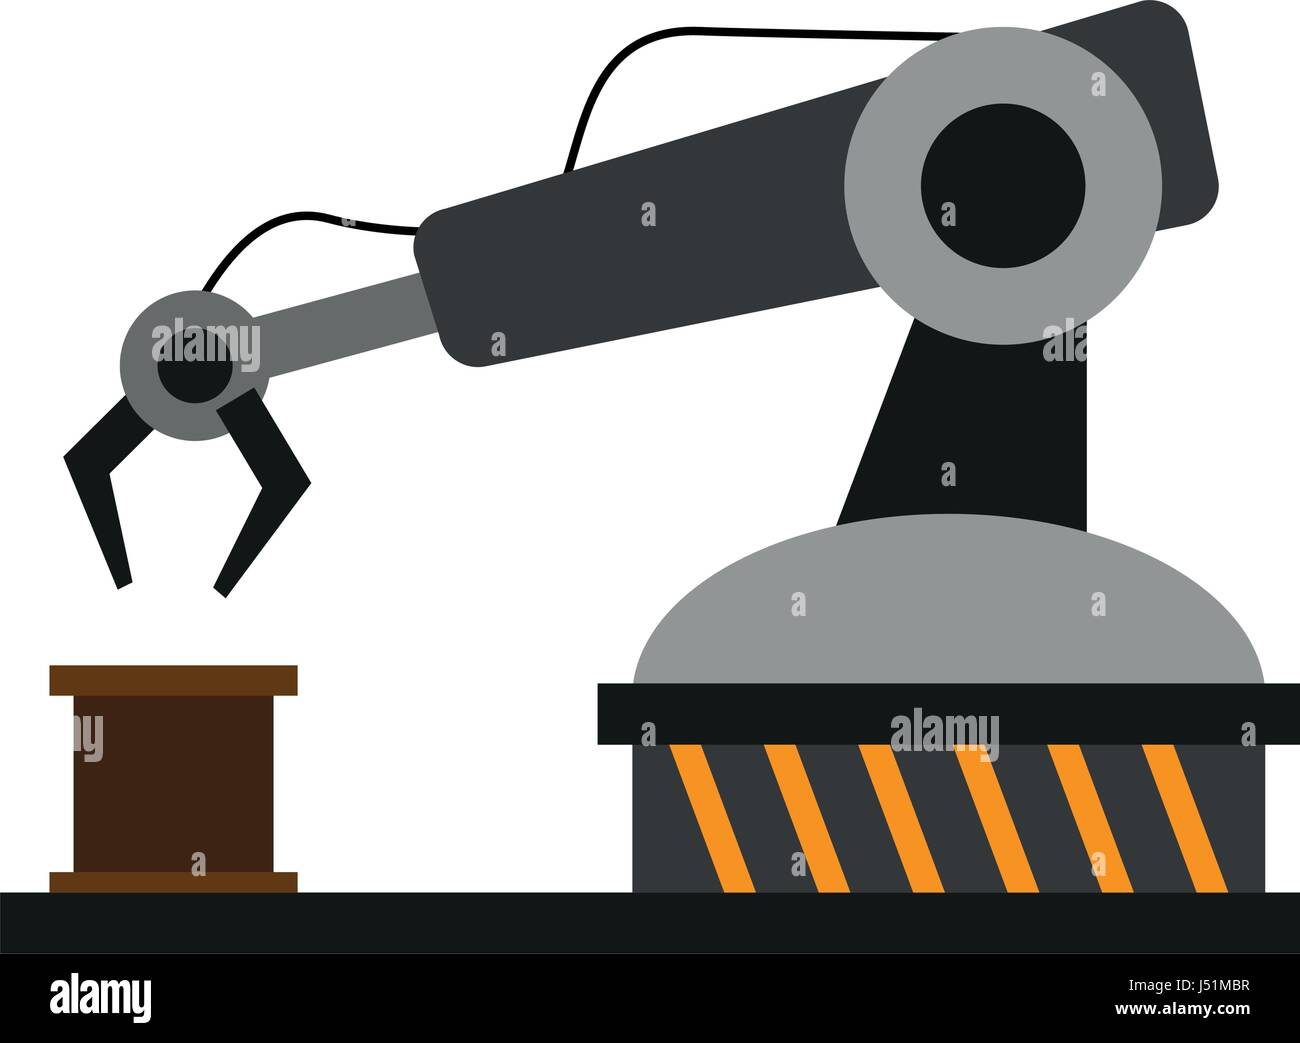 Assembly Icon: Assembly Line Industrial Machine Icon Image Stock Vector